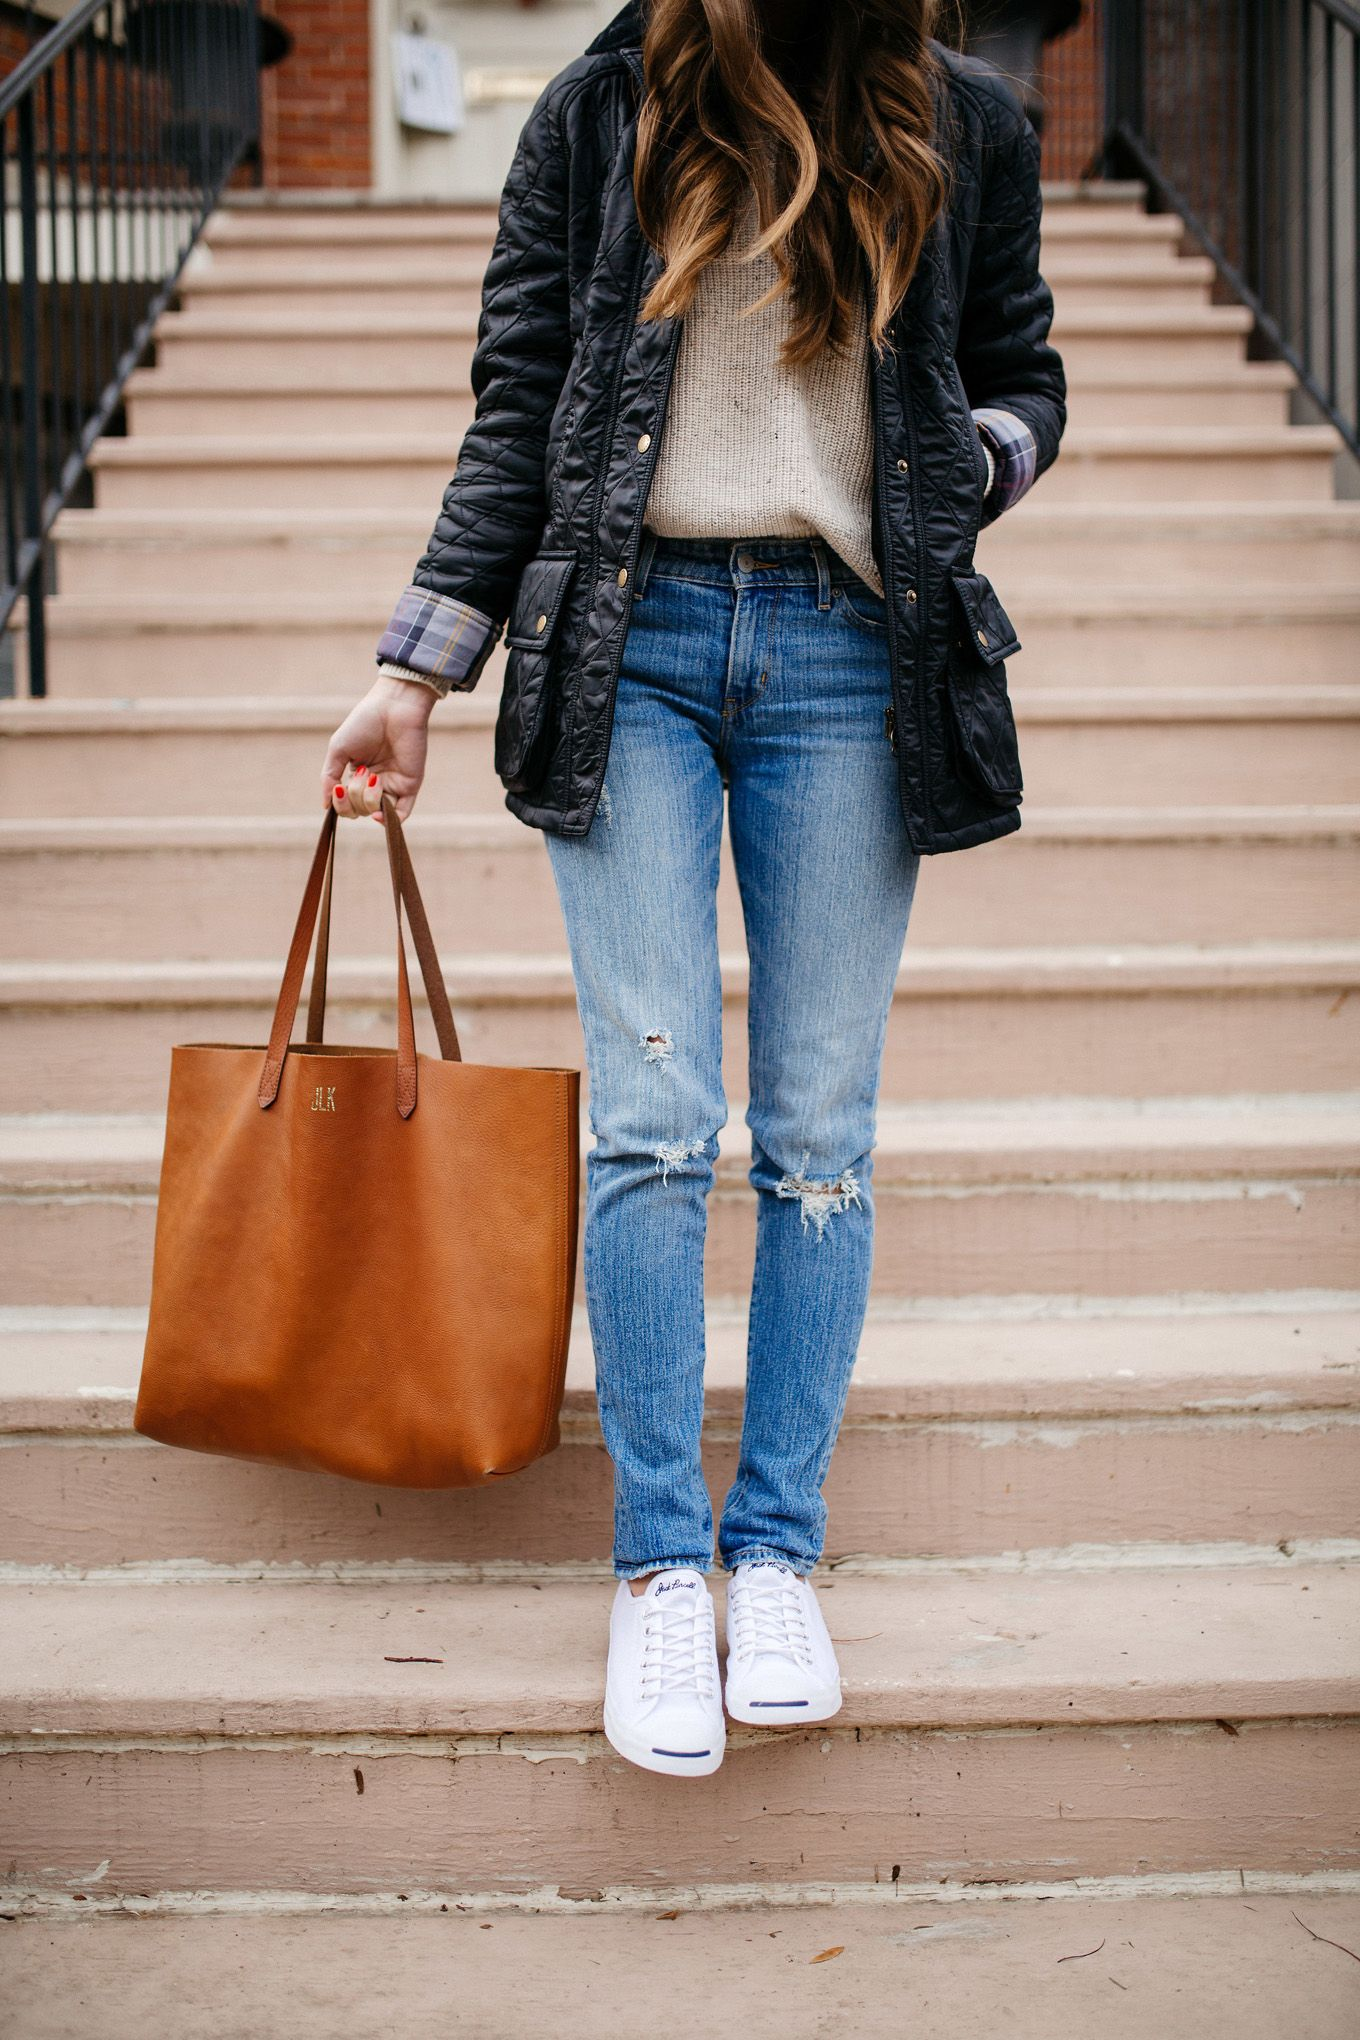 les idées de tenue quotidienne quotidienne tenue tenues | facile | pinterest | fashion 68cf2f